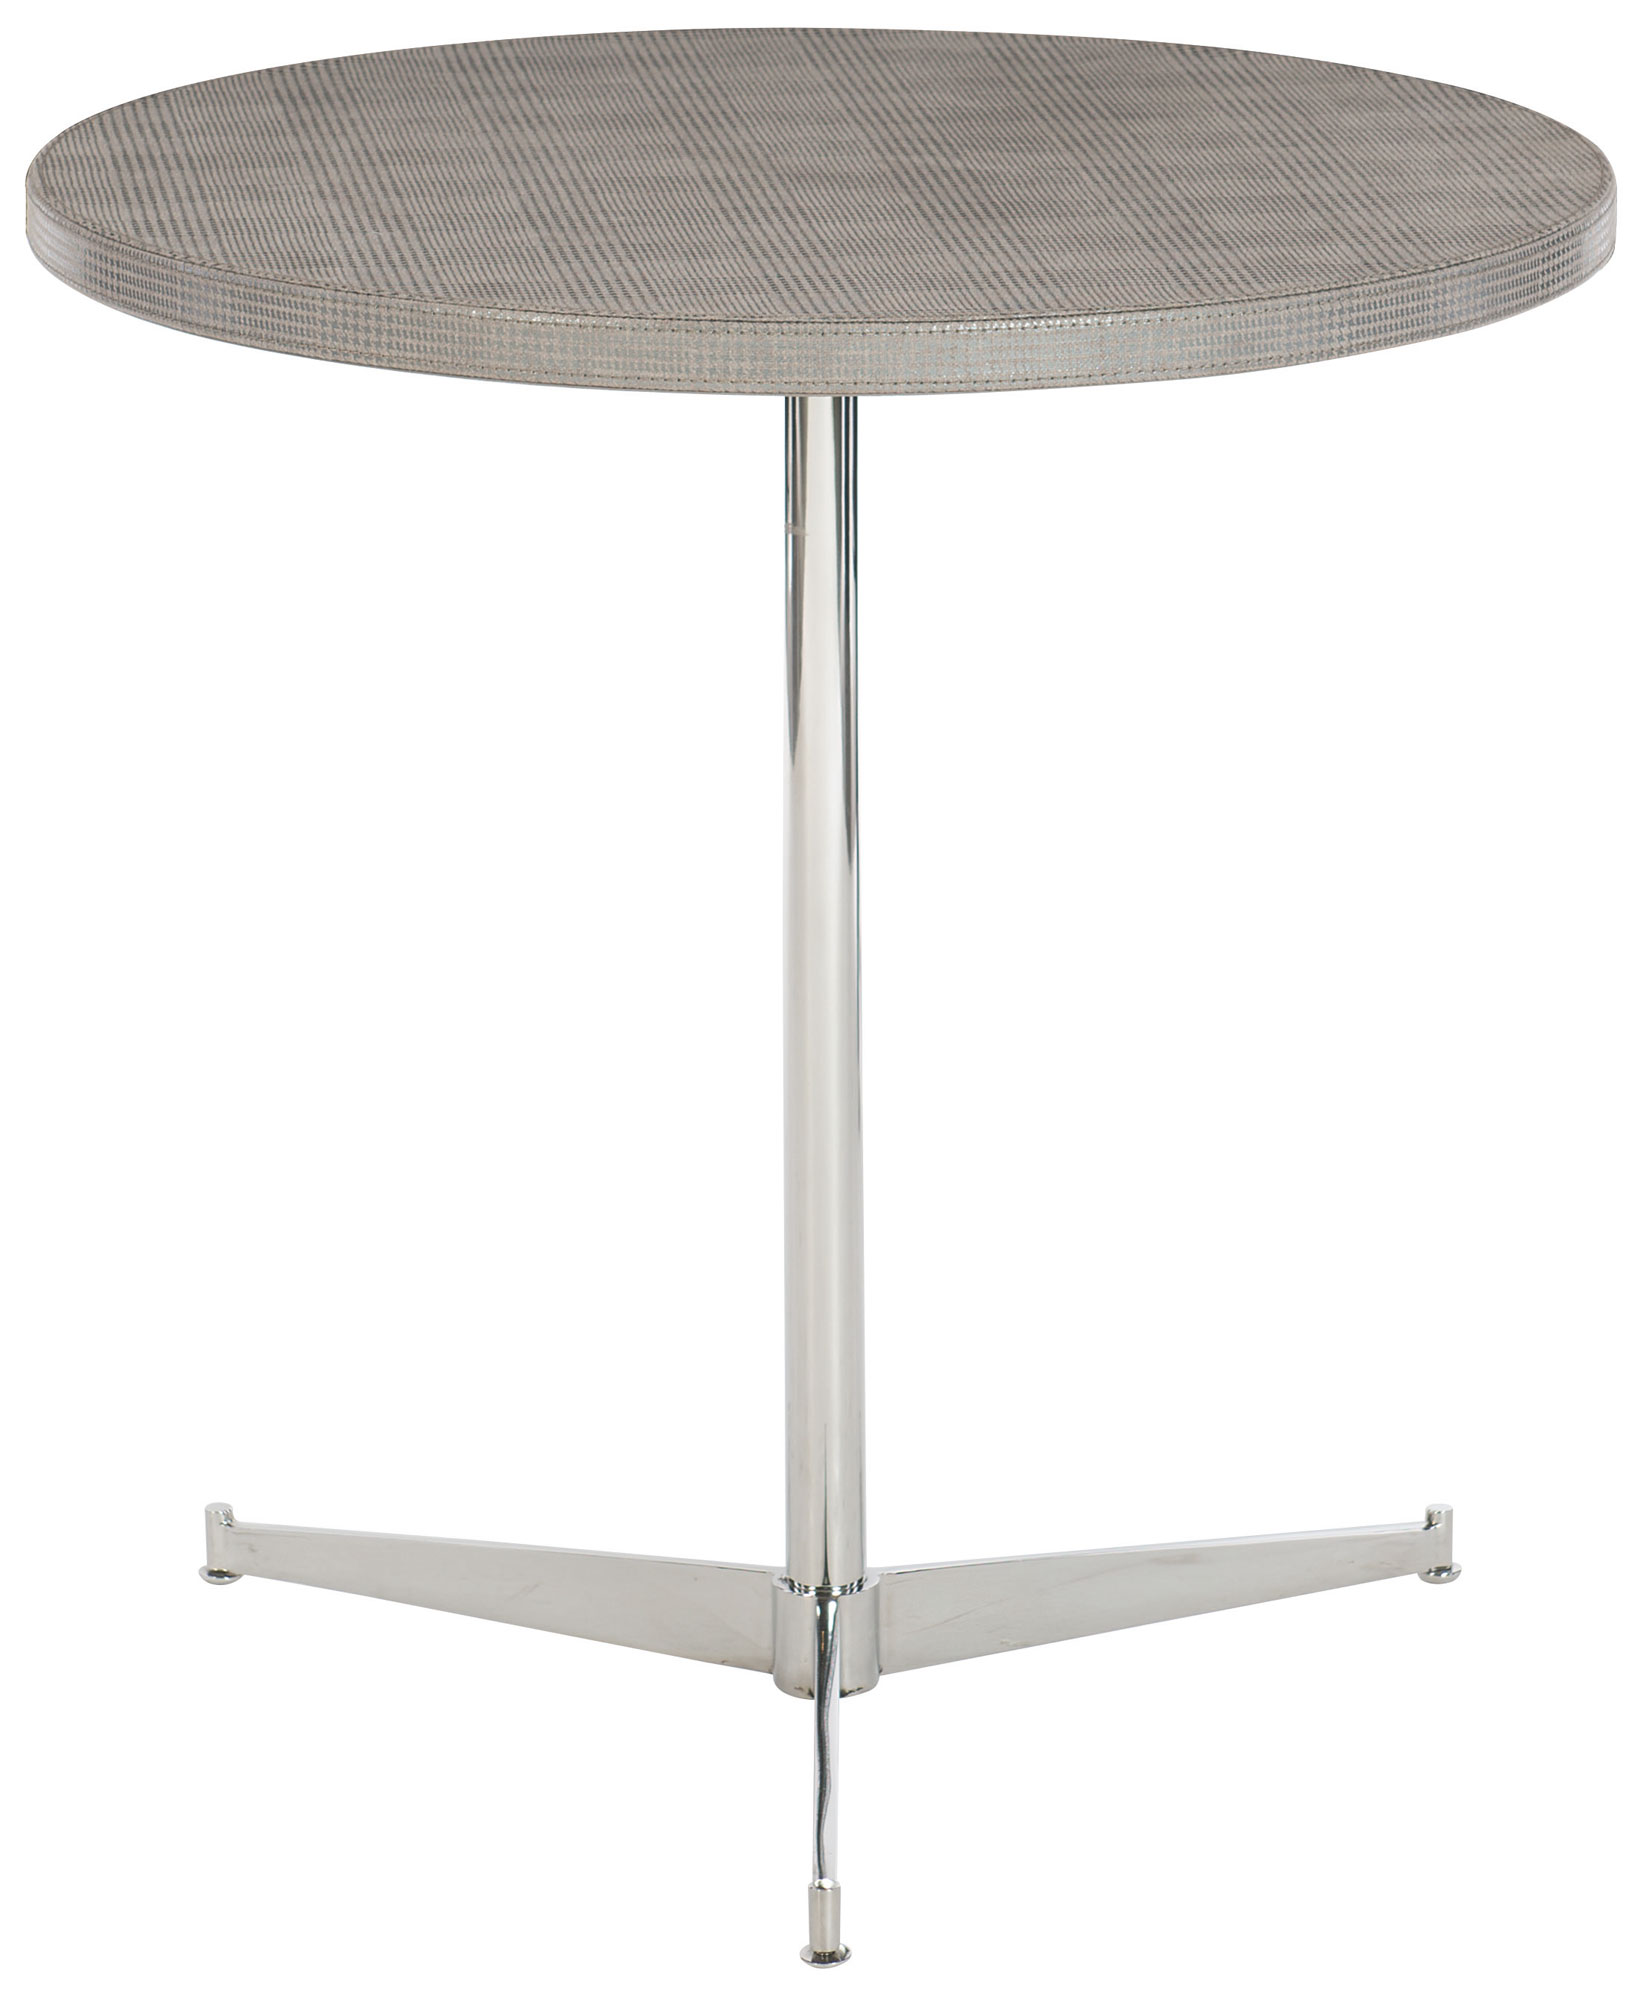 chair side tables canada stool philippines round chairside table bernhardt